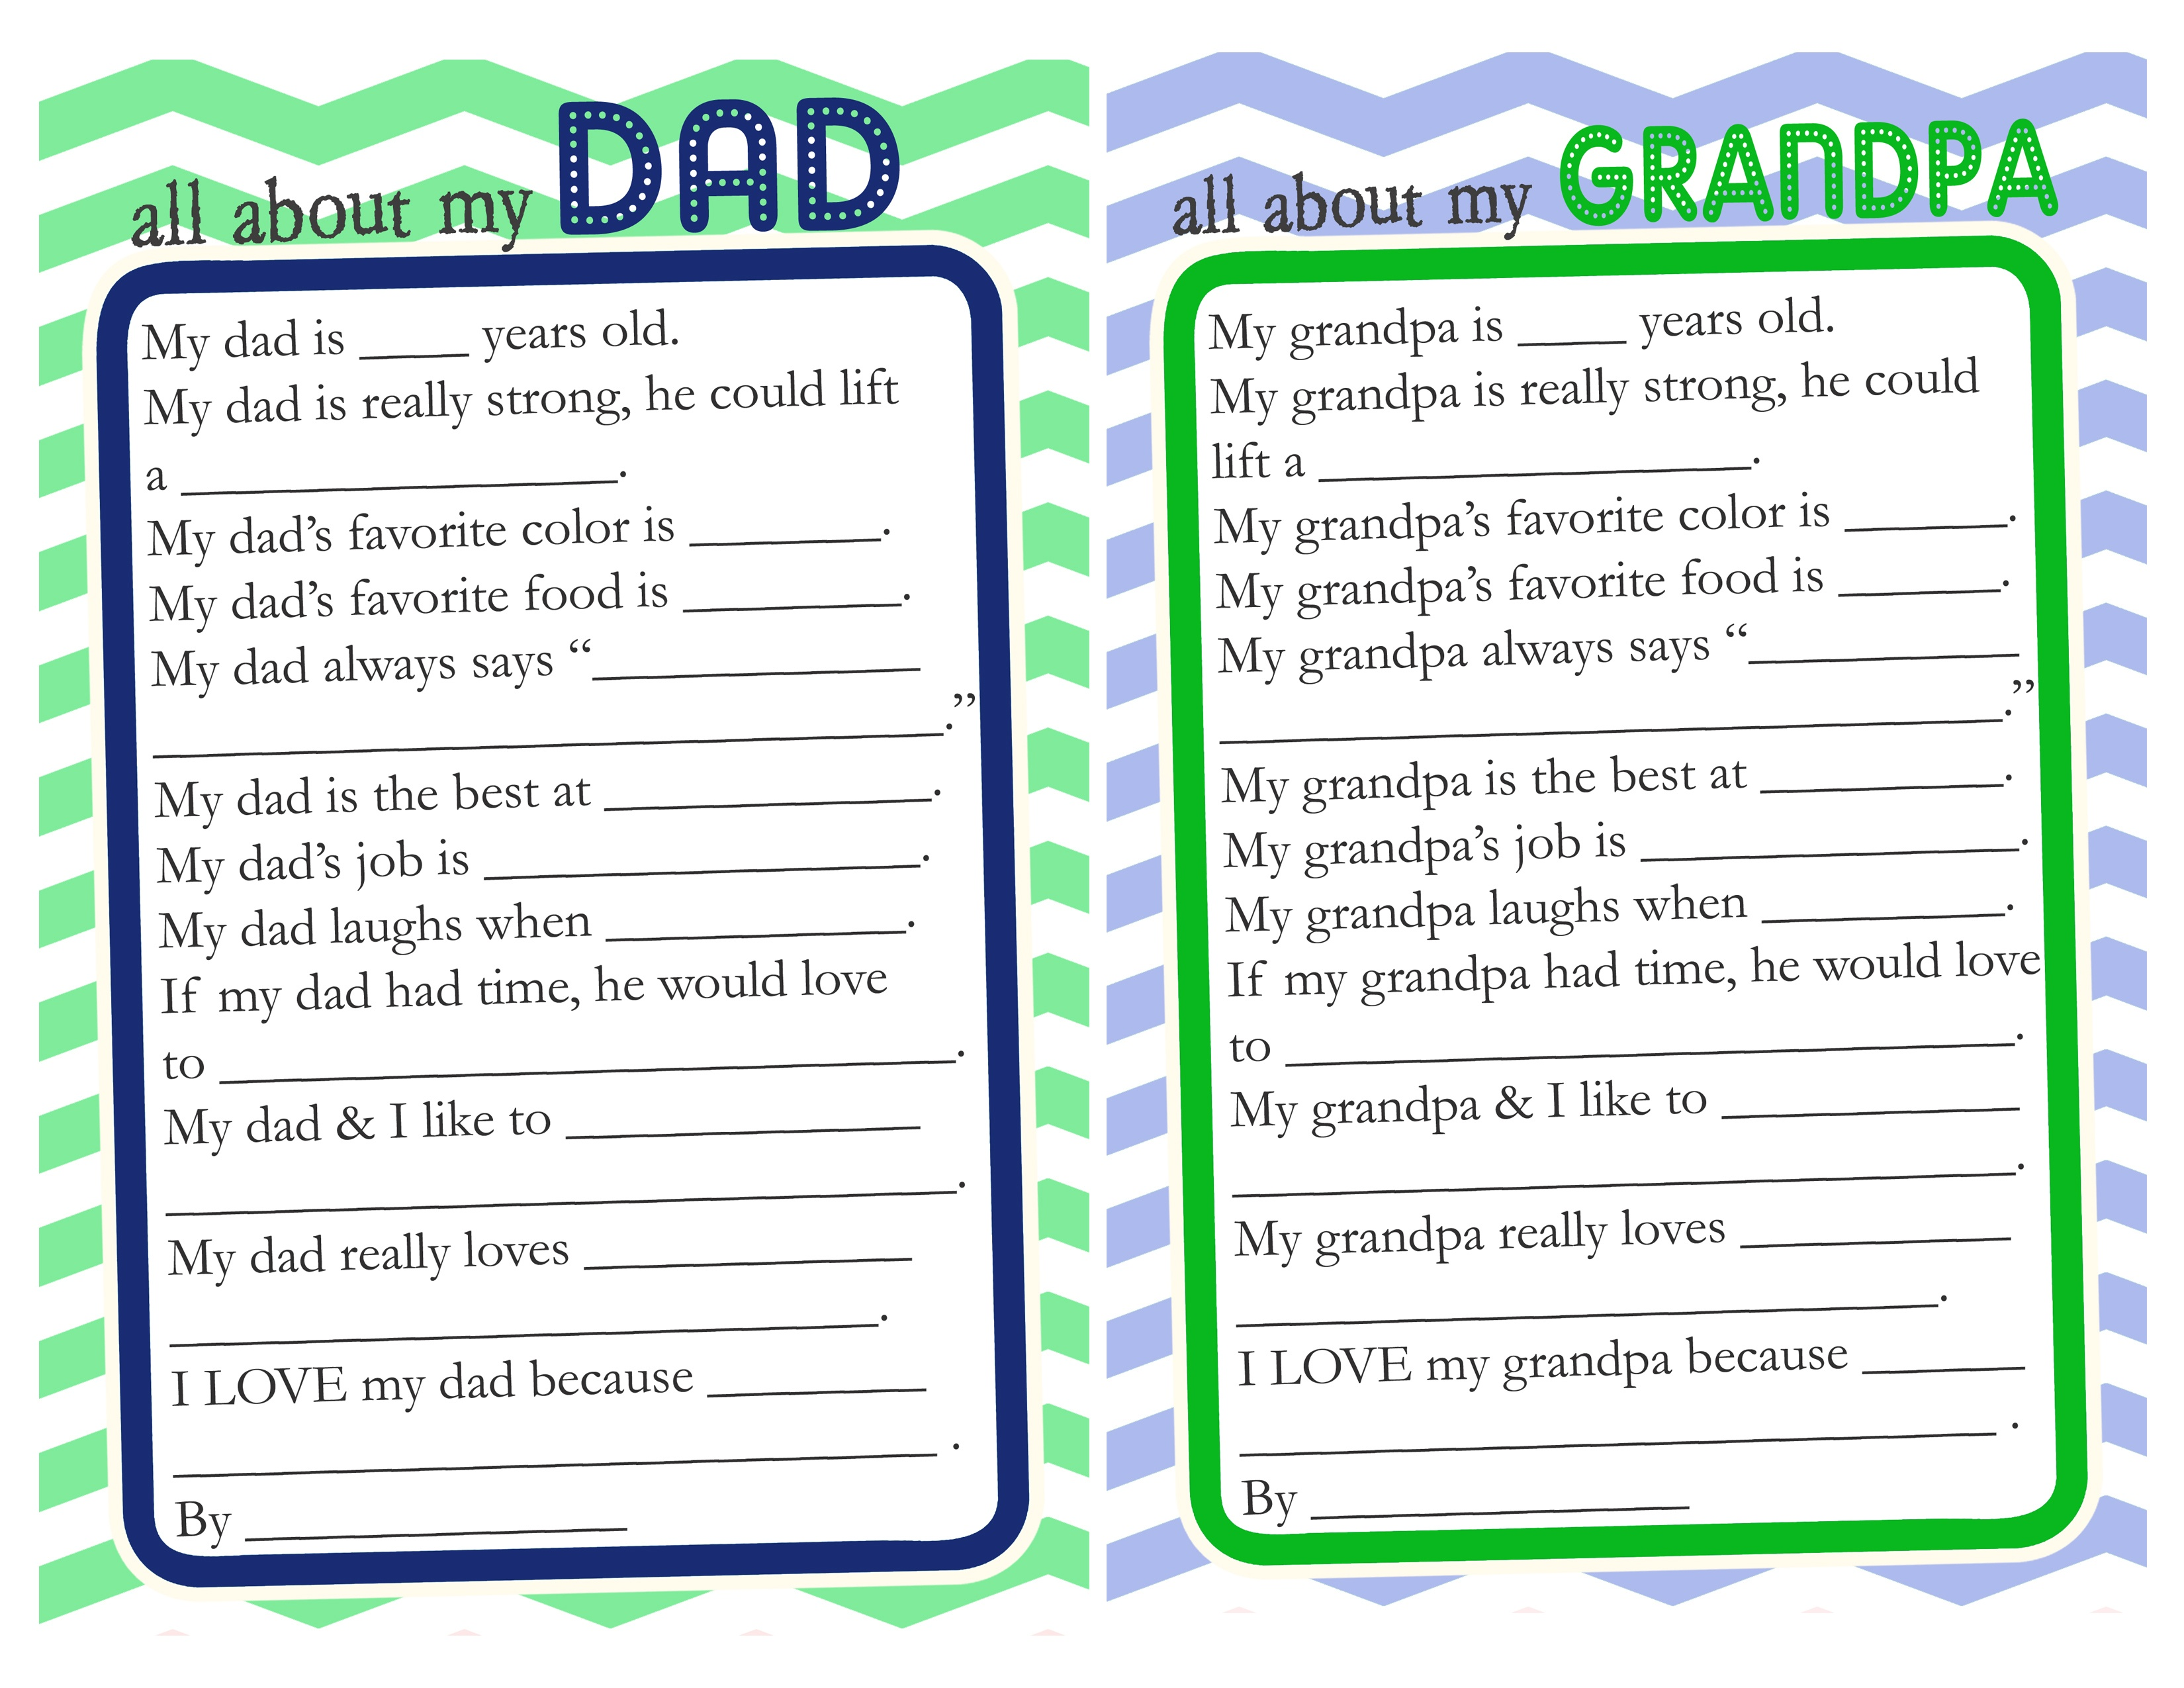 Father's Day Questionnaire & Free Printable - The Crafting Chicks - Free Printable Happy Fathers Day Grandpa Cards